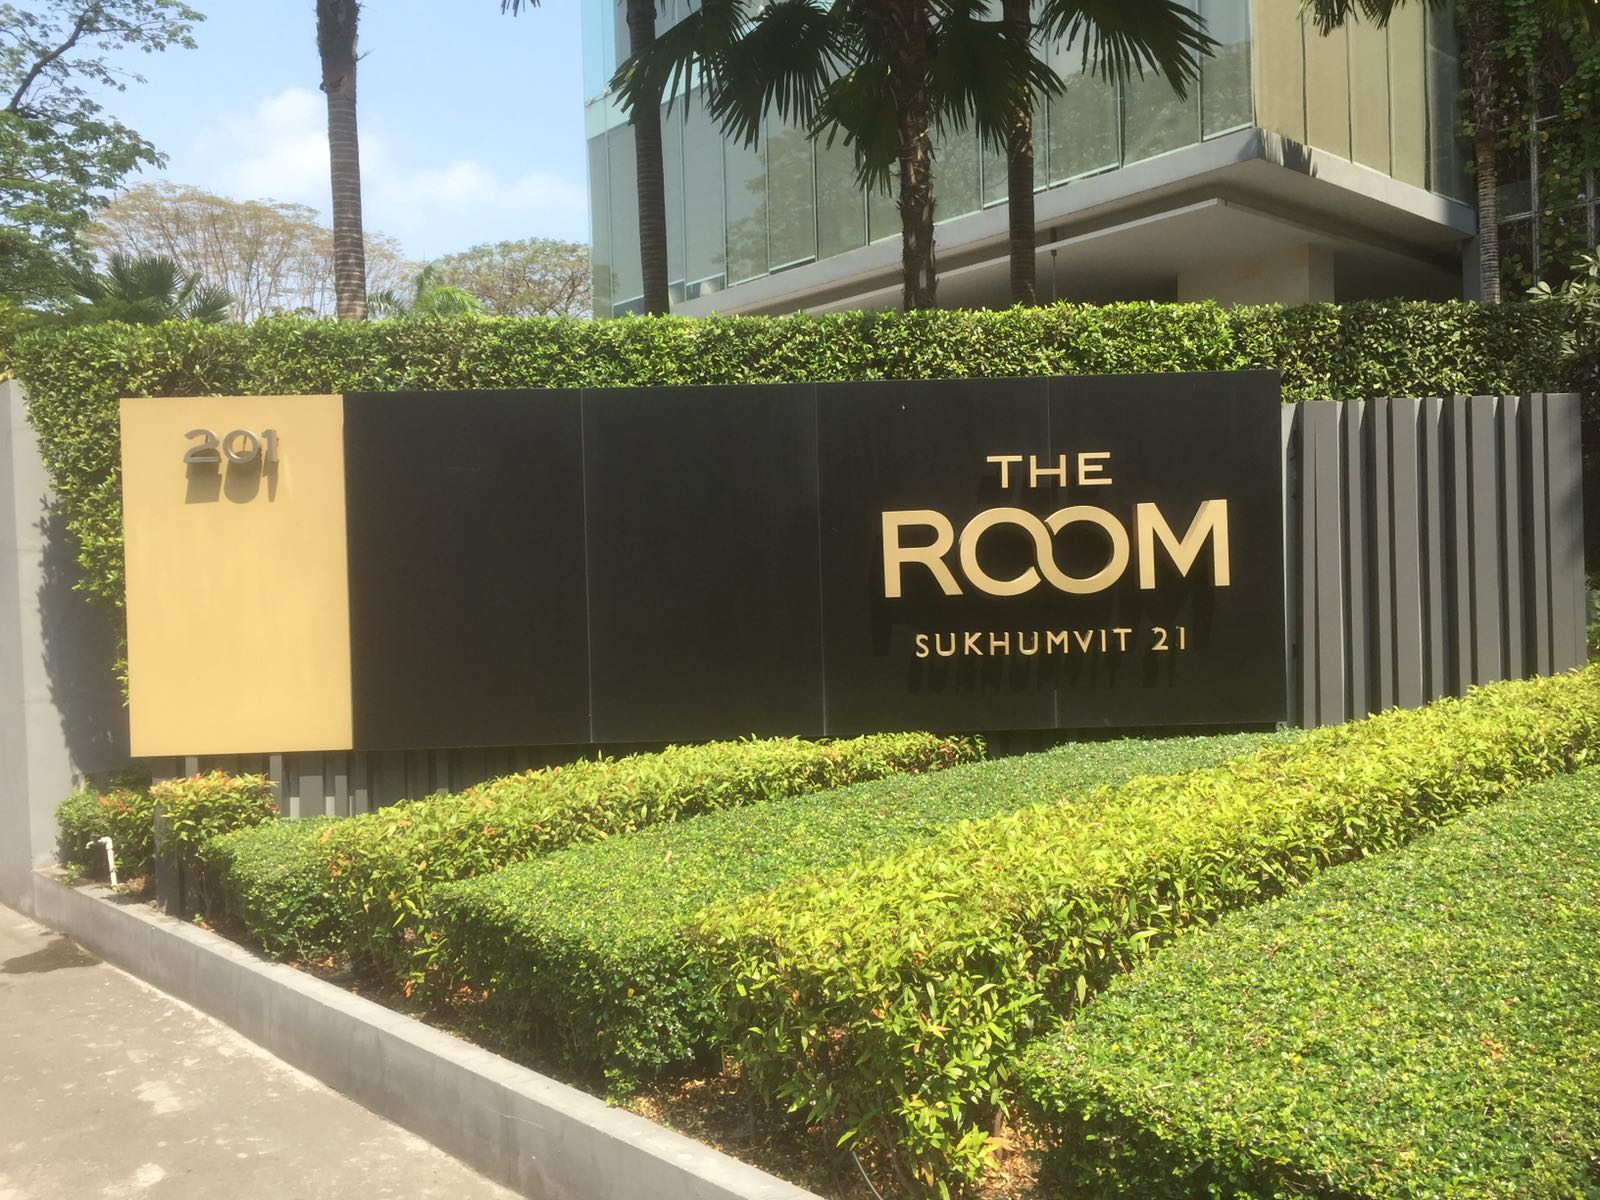 RE/MAX All Star Realty Agency's The Room Sukhumvit 21 large one bedder (53sqm) for sale/rent cheap 9